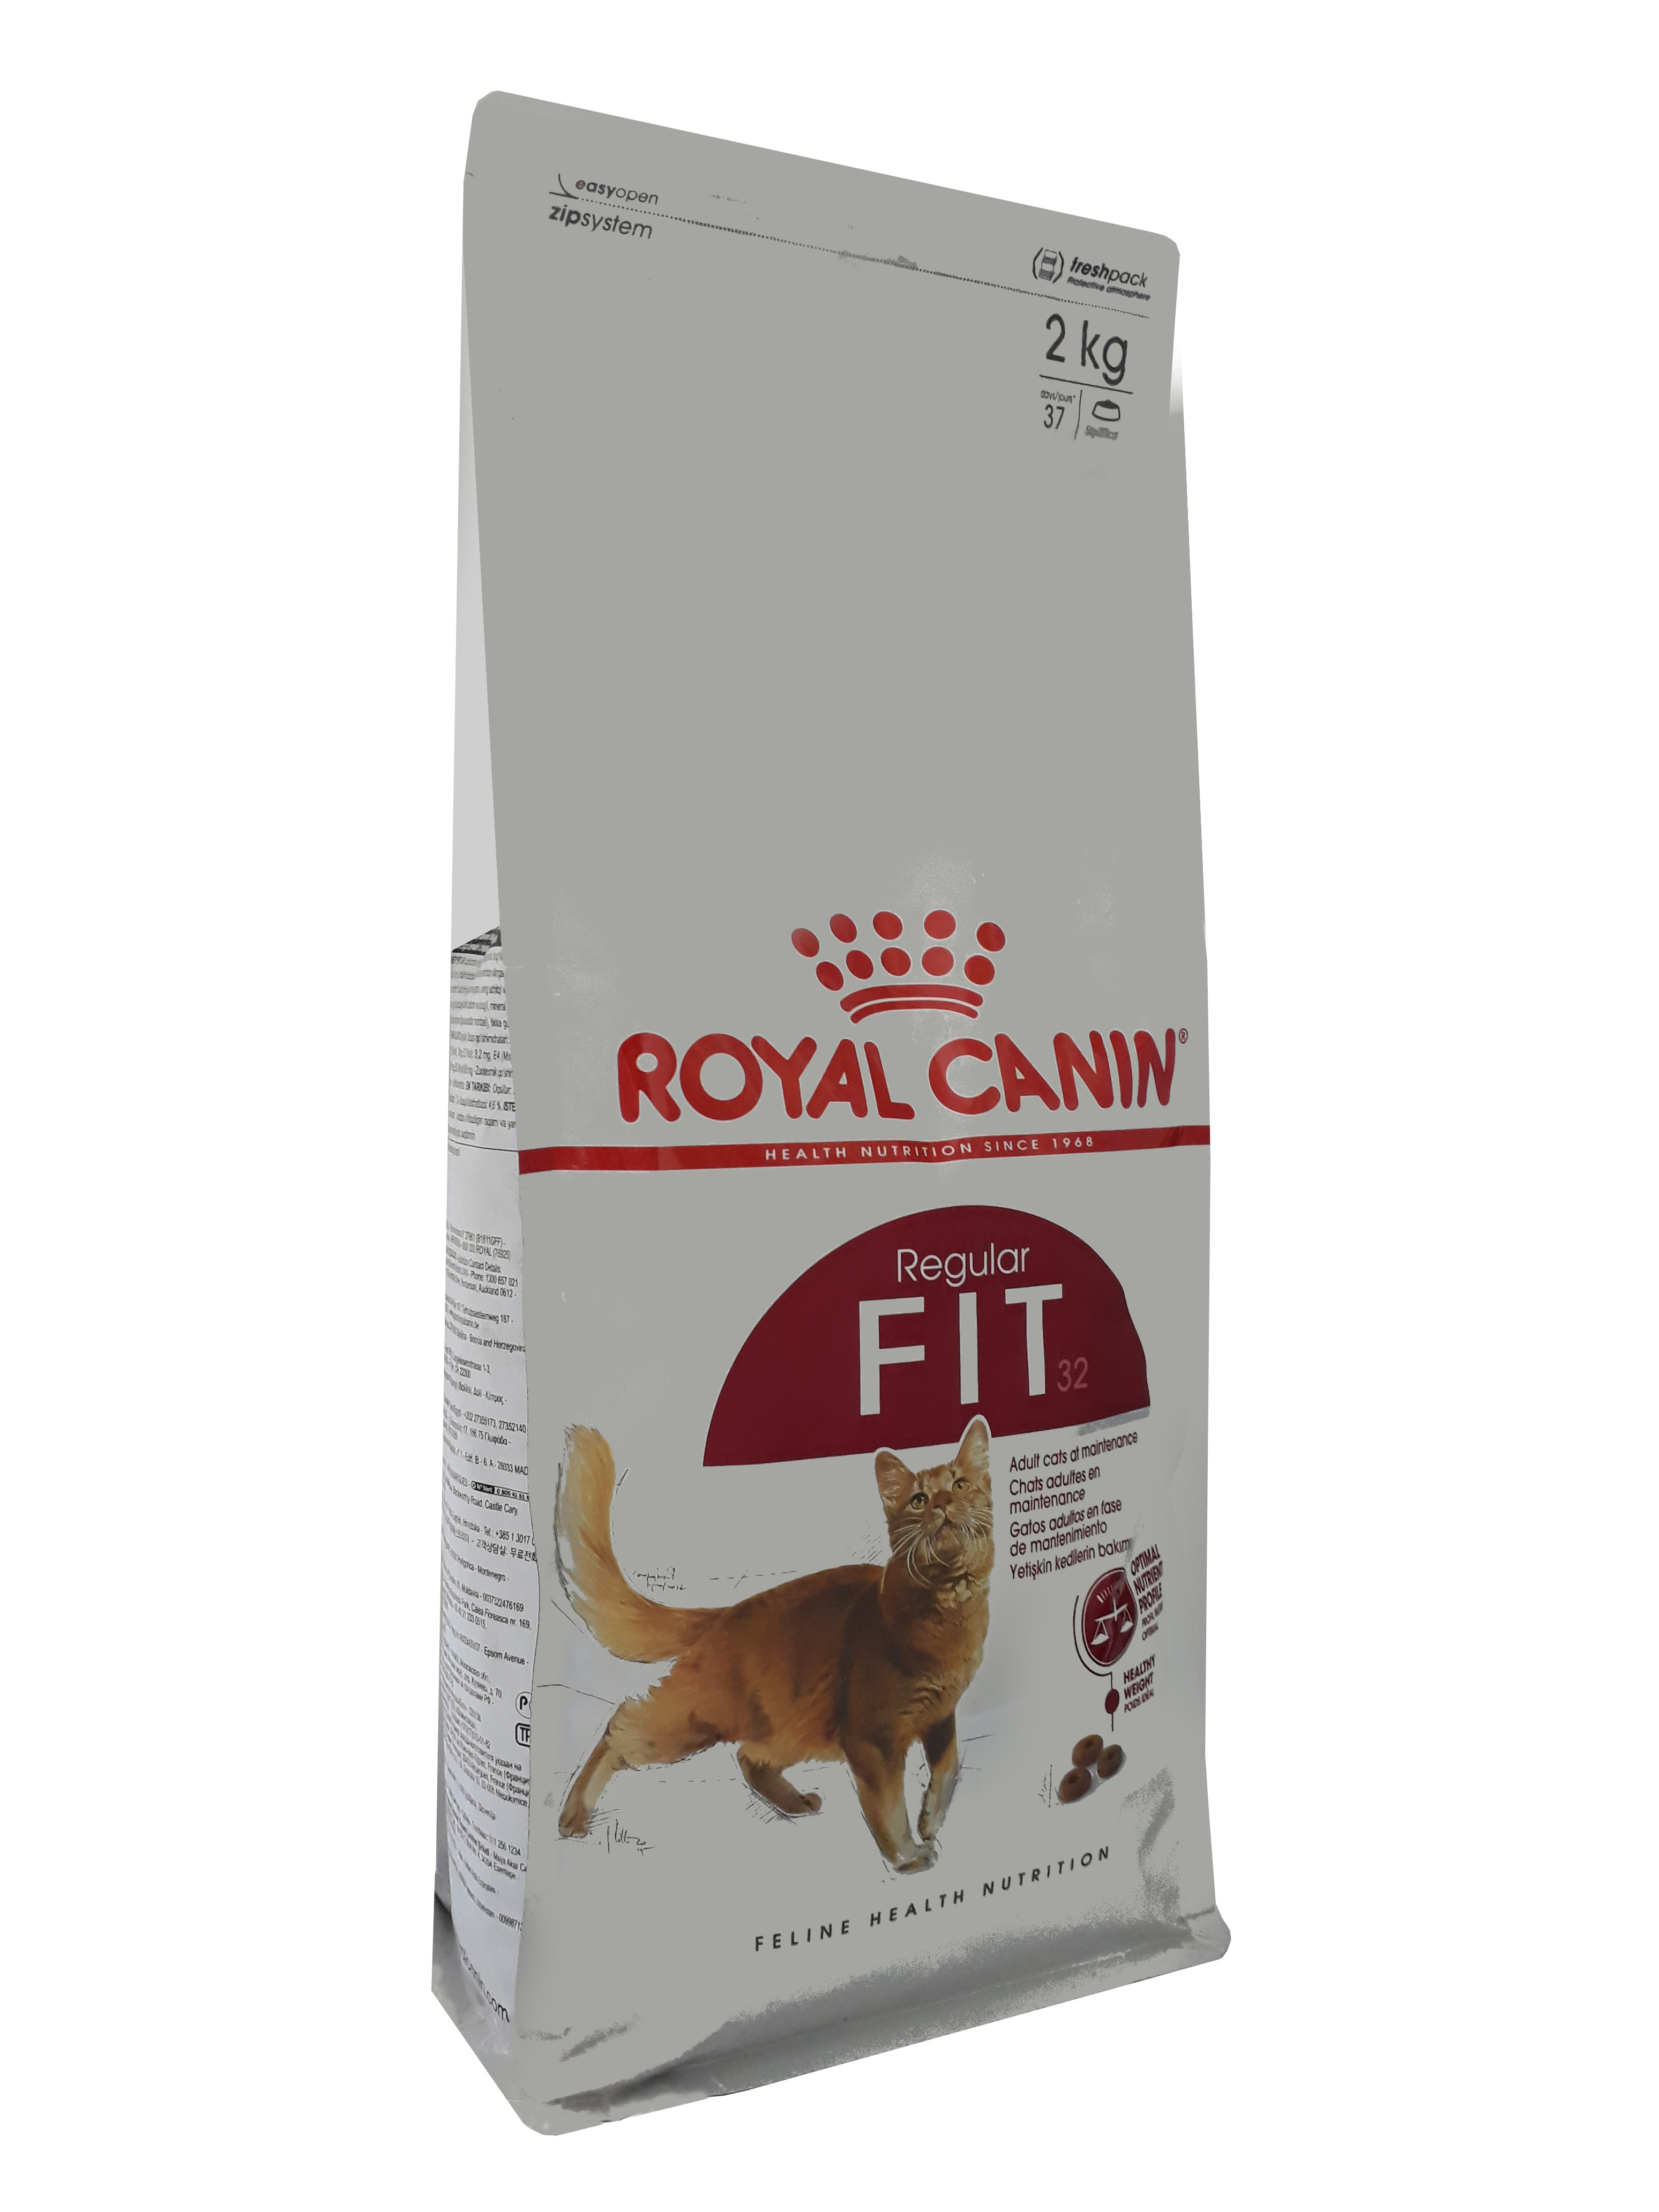 Pets Point Royal Canin Persian Adult 1kg Fit 32 Feline 2kg